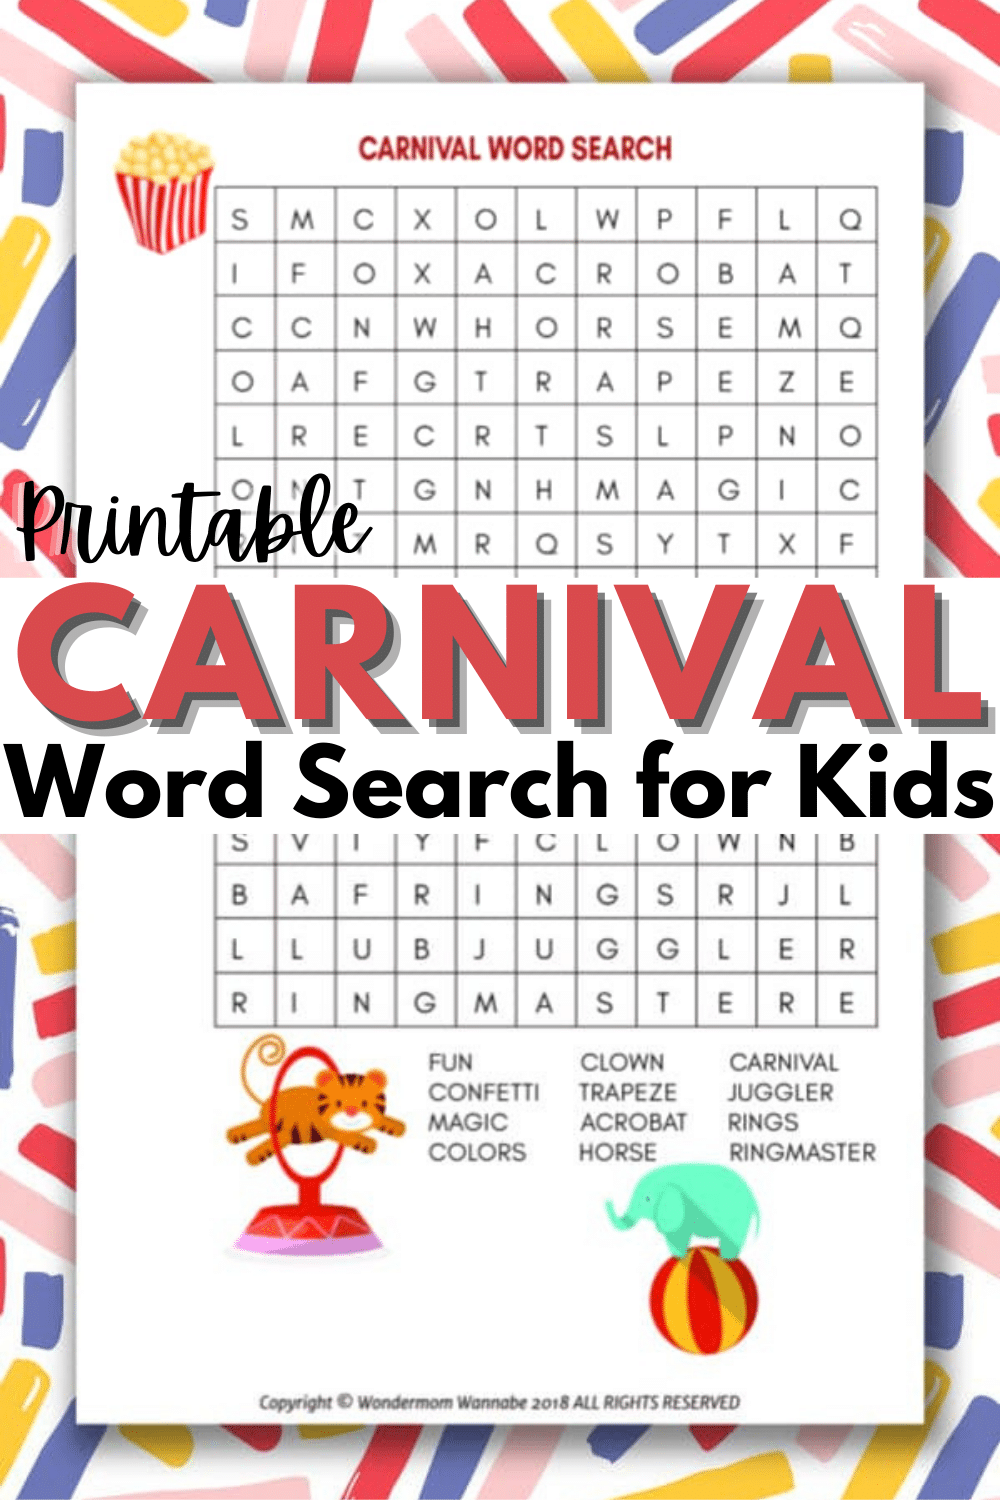 A fun carnival word search for kids is the perfect printable kids activity for any carnival themed party, celebration or event you may be throwing. #carnival #wordsearch #printables via @wondermomwannab